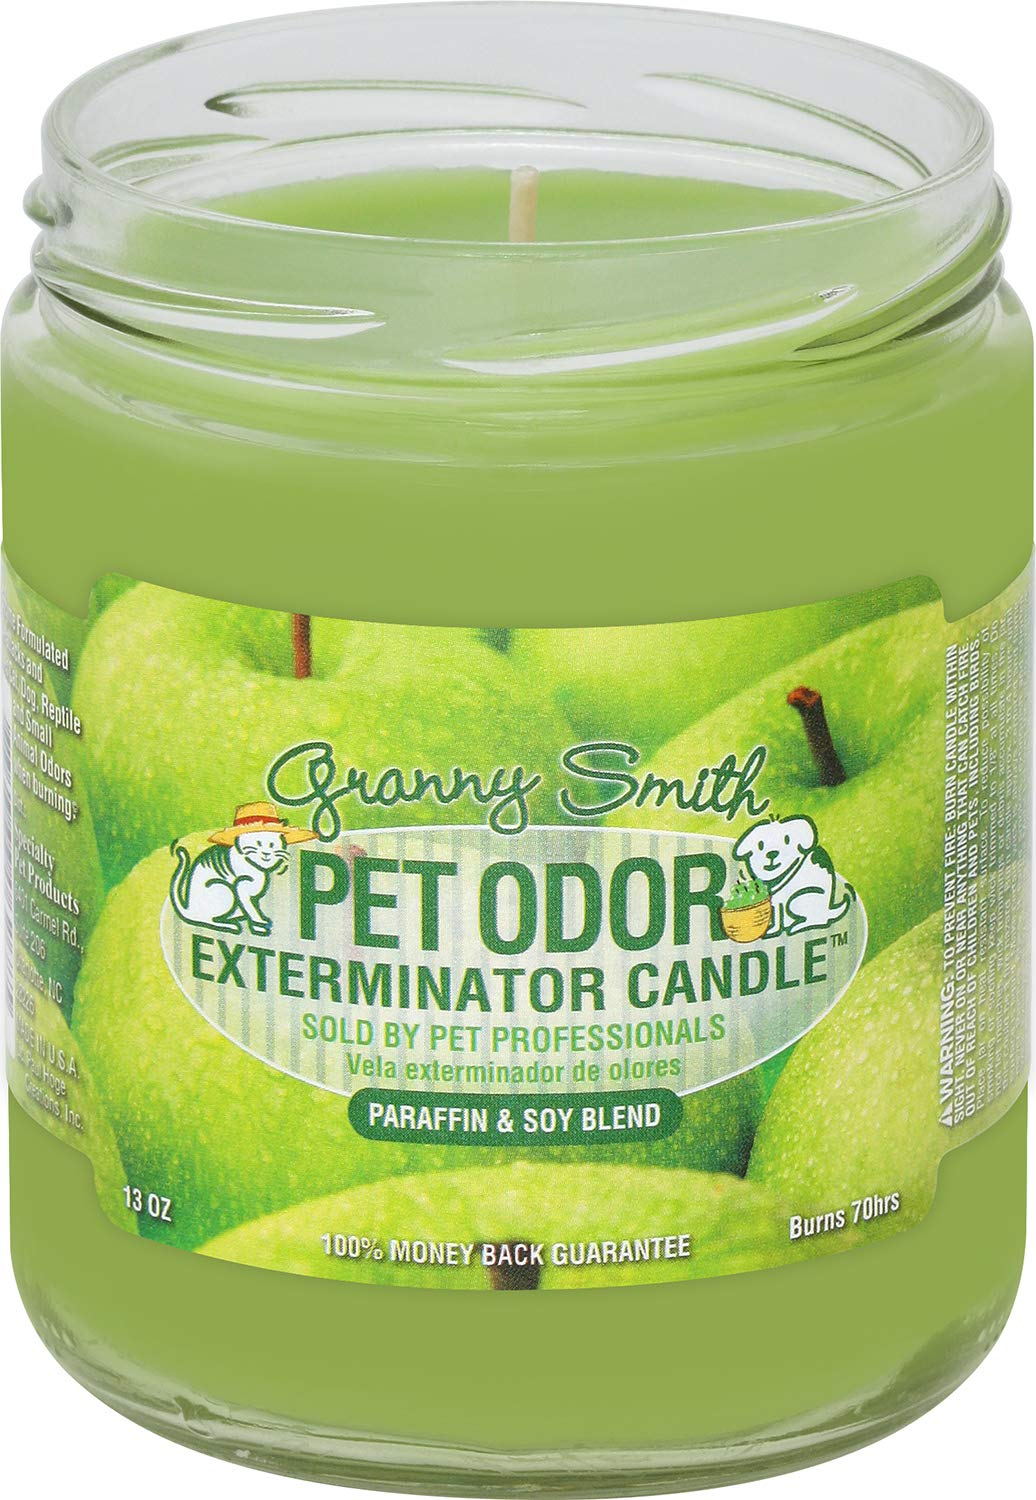 Specialty Pet Products Pet Odor Exterminator Candle, Granny Smith - Pack of 2 by Specialty Pet Products